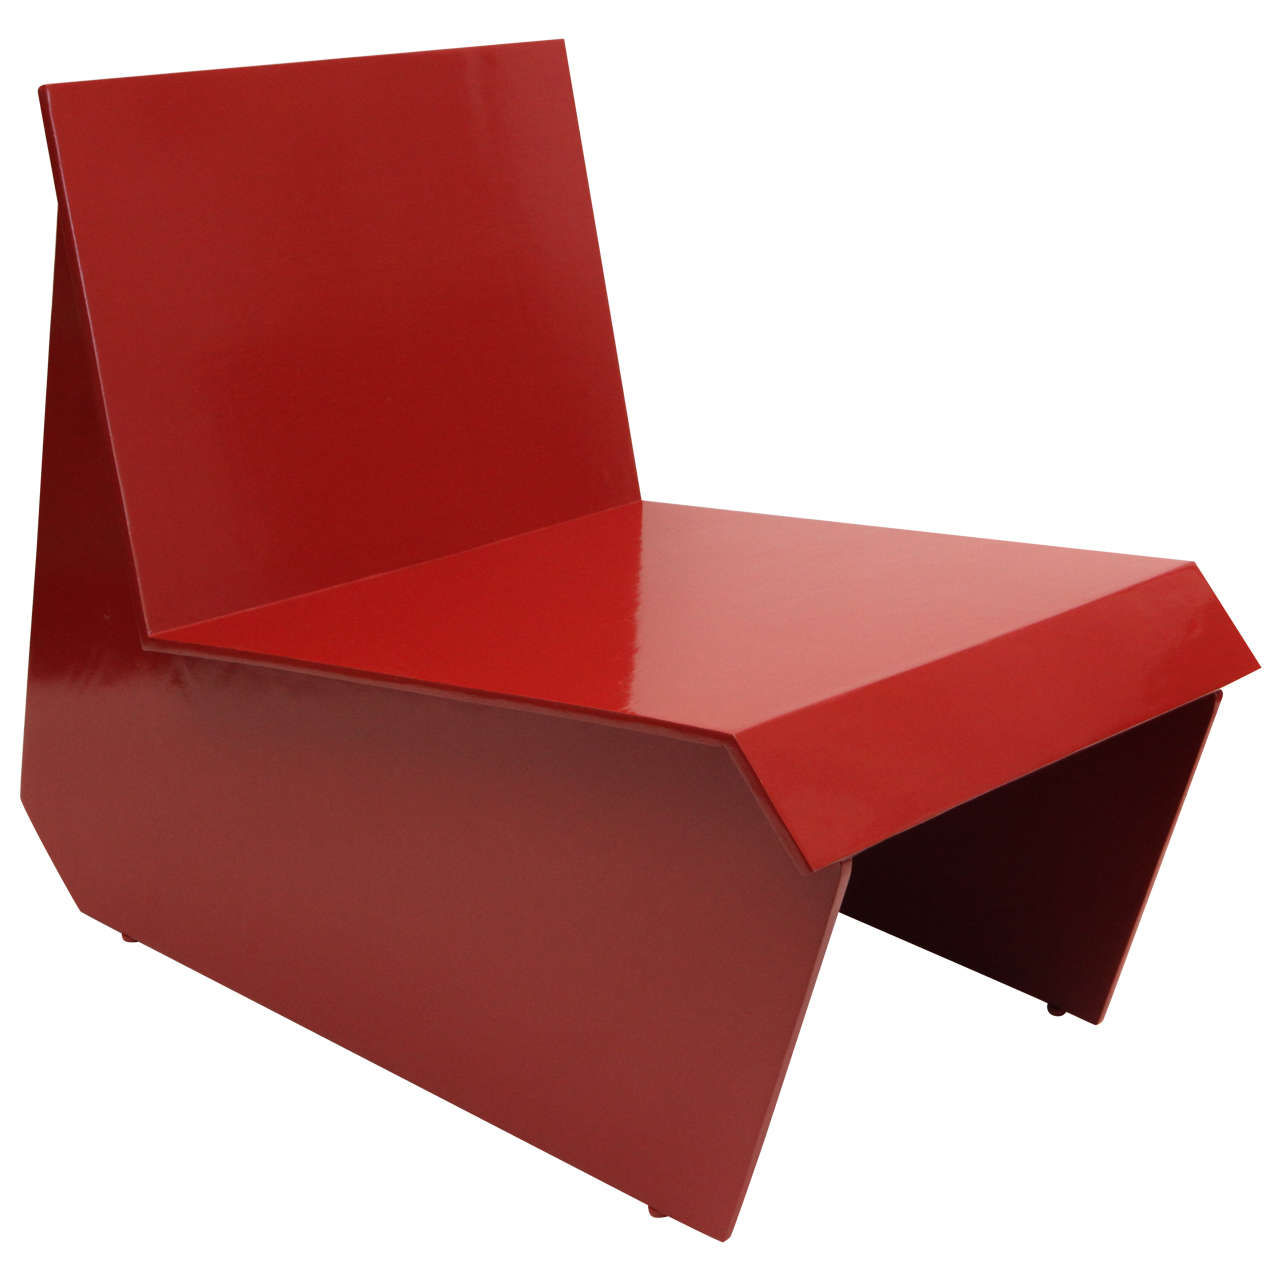 Vintage Lounge Chair After Frank Lloyd Wright 1